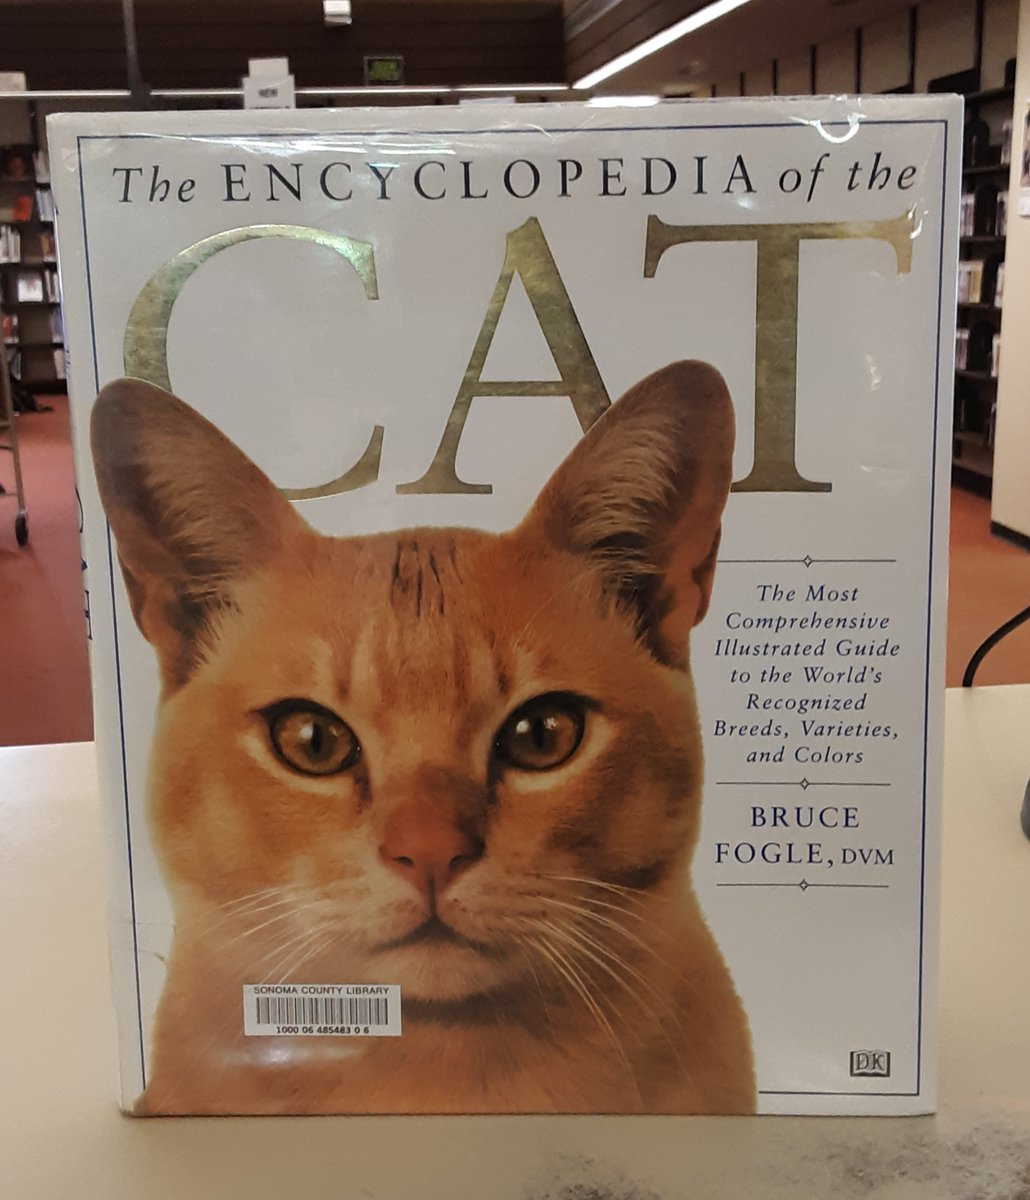 How is a book of beautiful cat pictures better than peanut butter on pancakes? Find out in the Encyclopedia of the Cat. http://ow.ly/J7E650ytmoL  #caturdaypic.twitter.com/9fGaSS9GQm